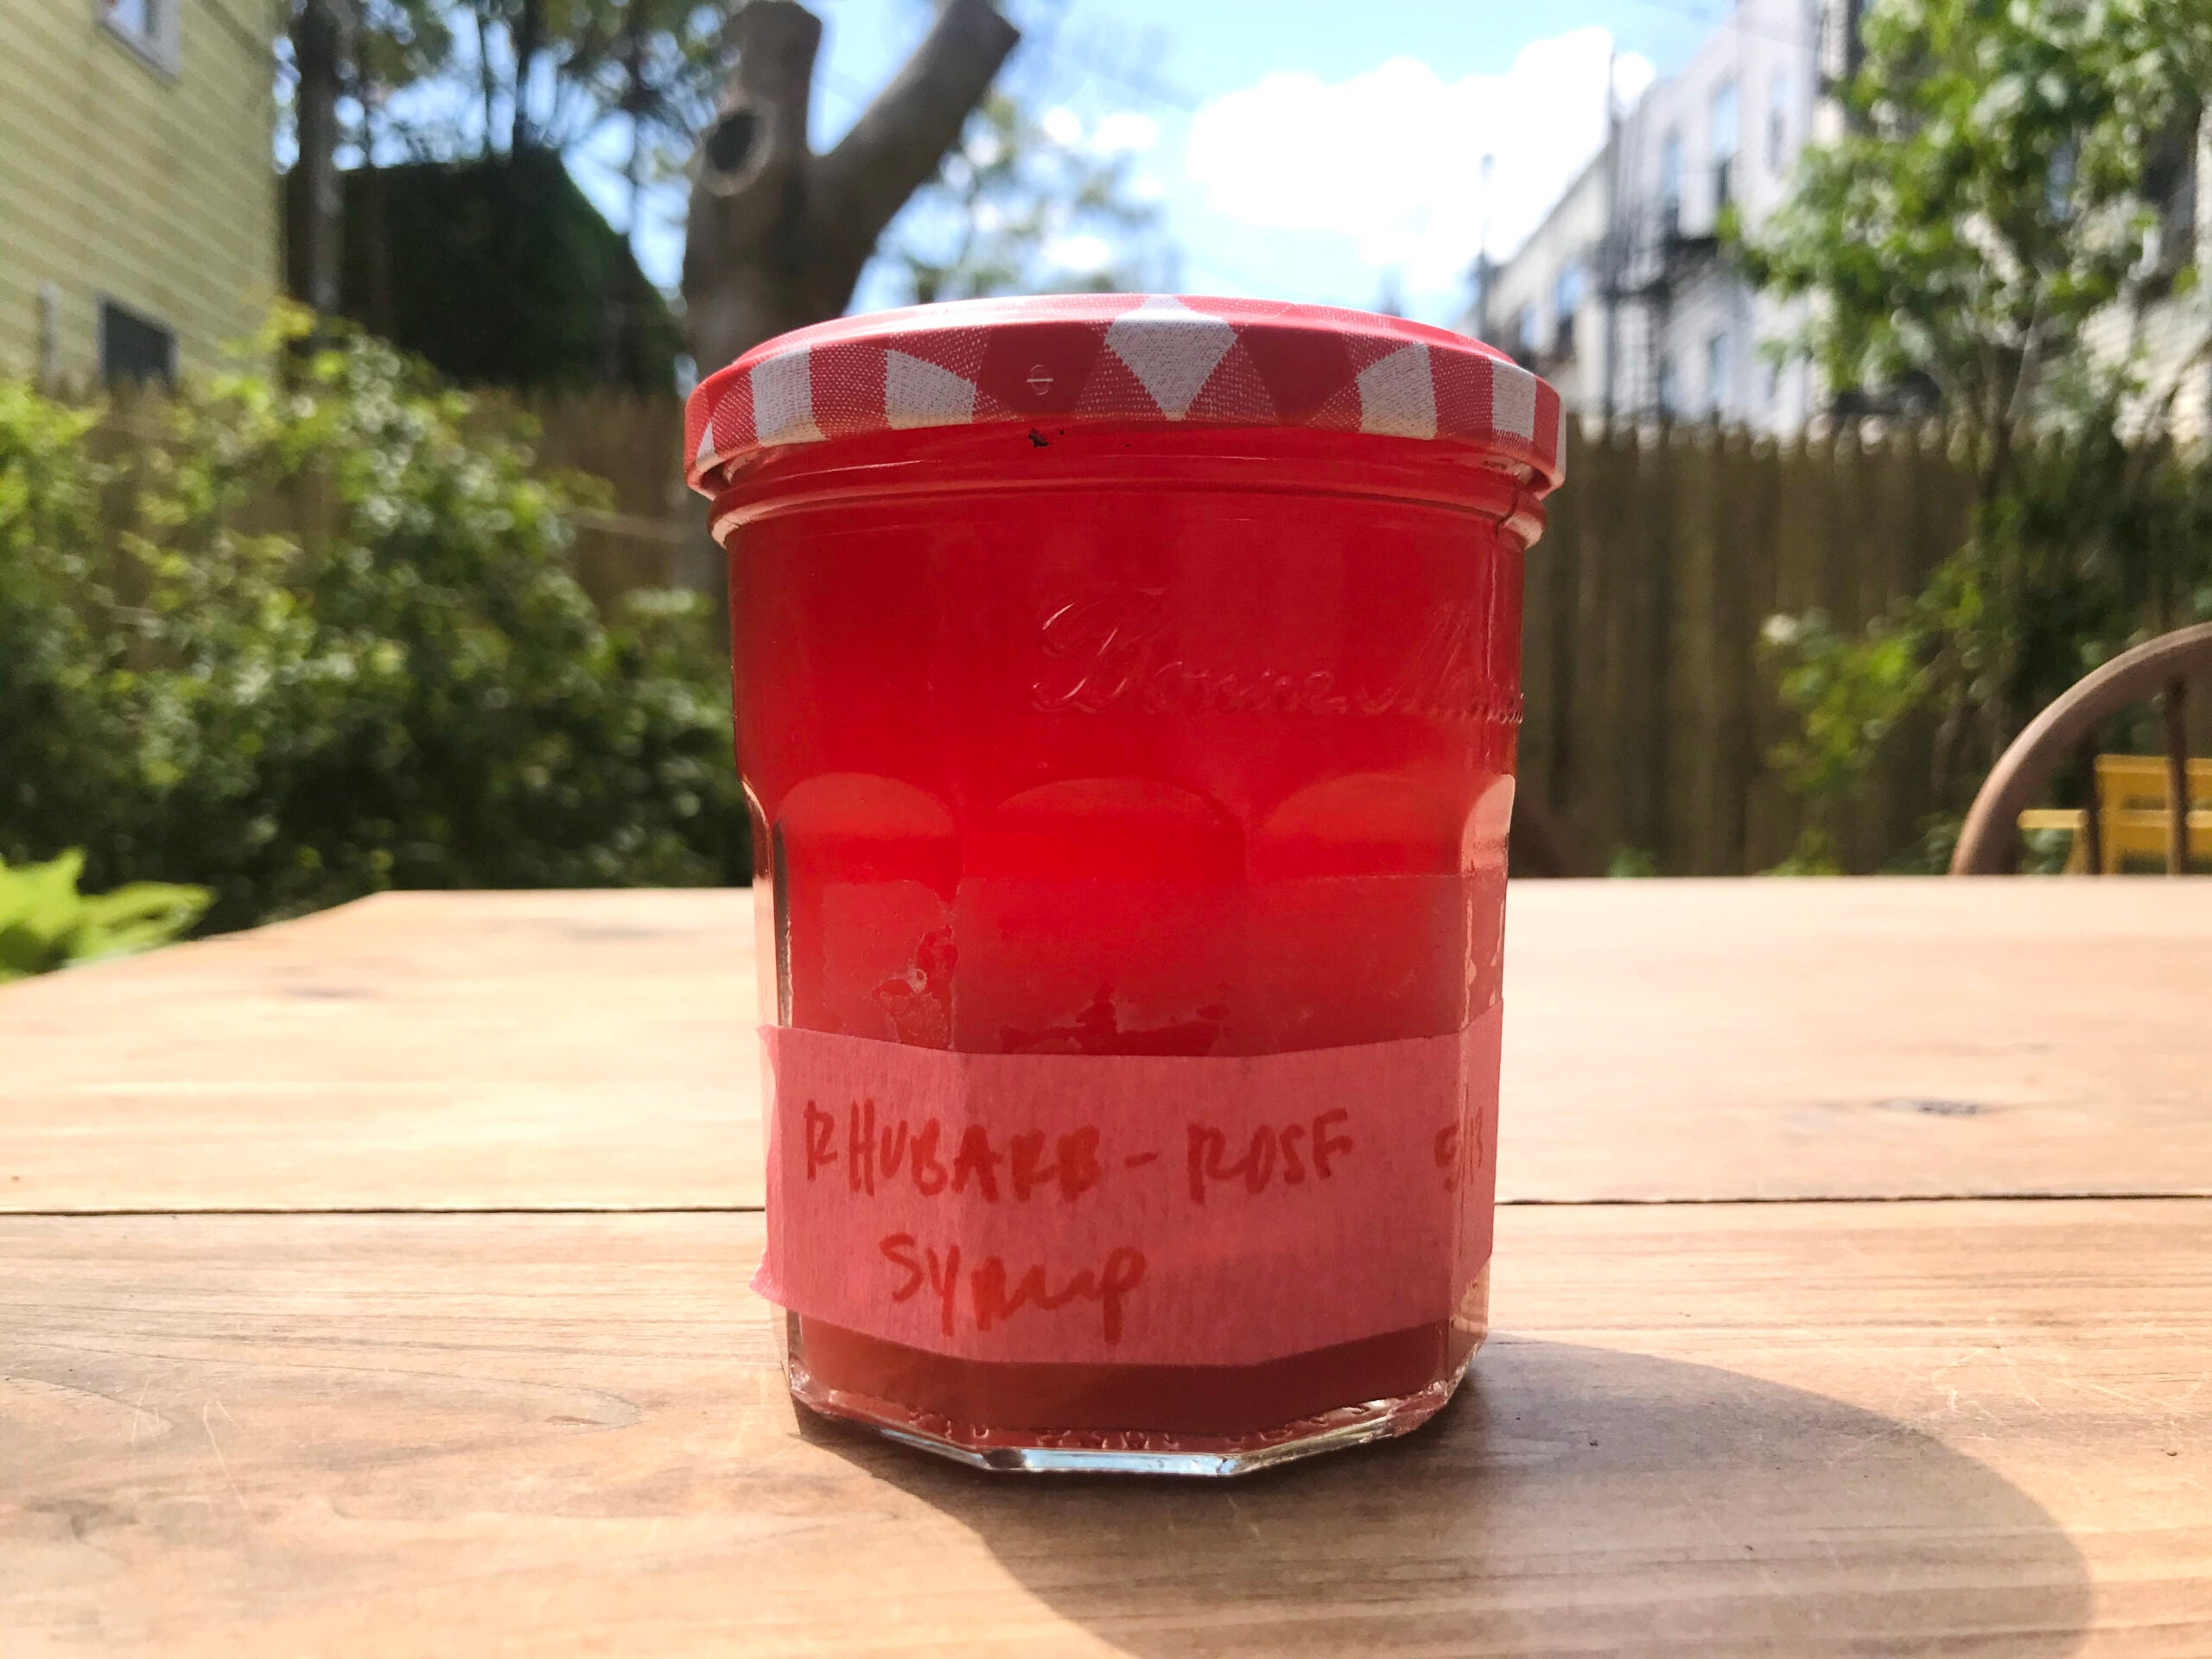 Rhubarb and Rose Syrup